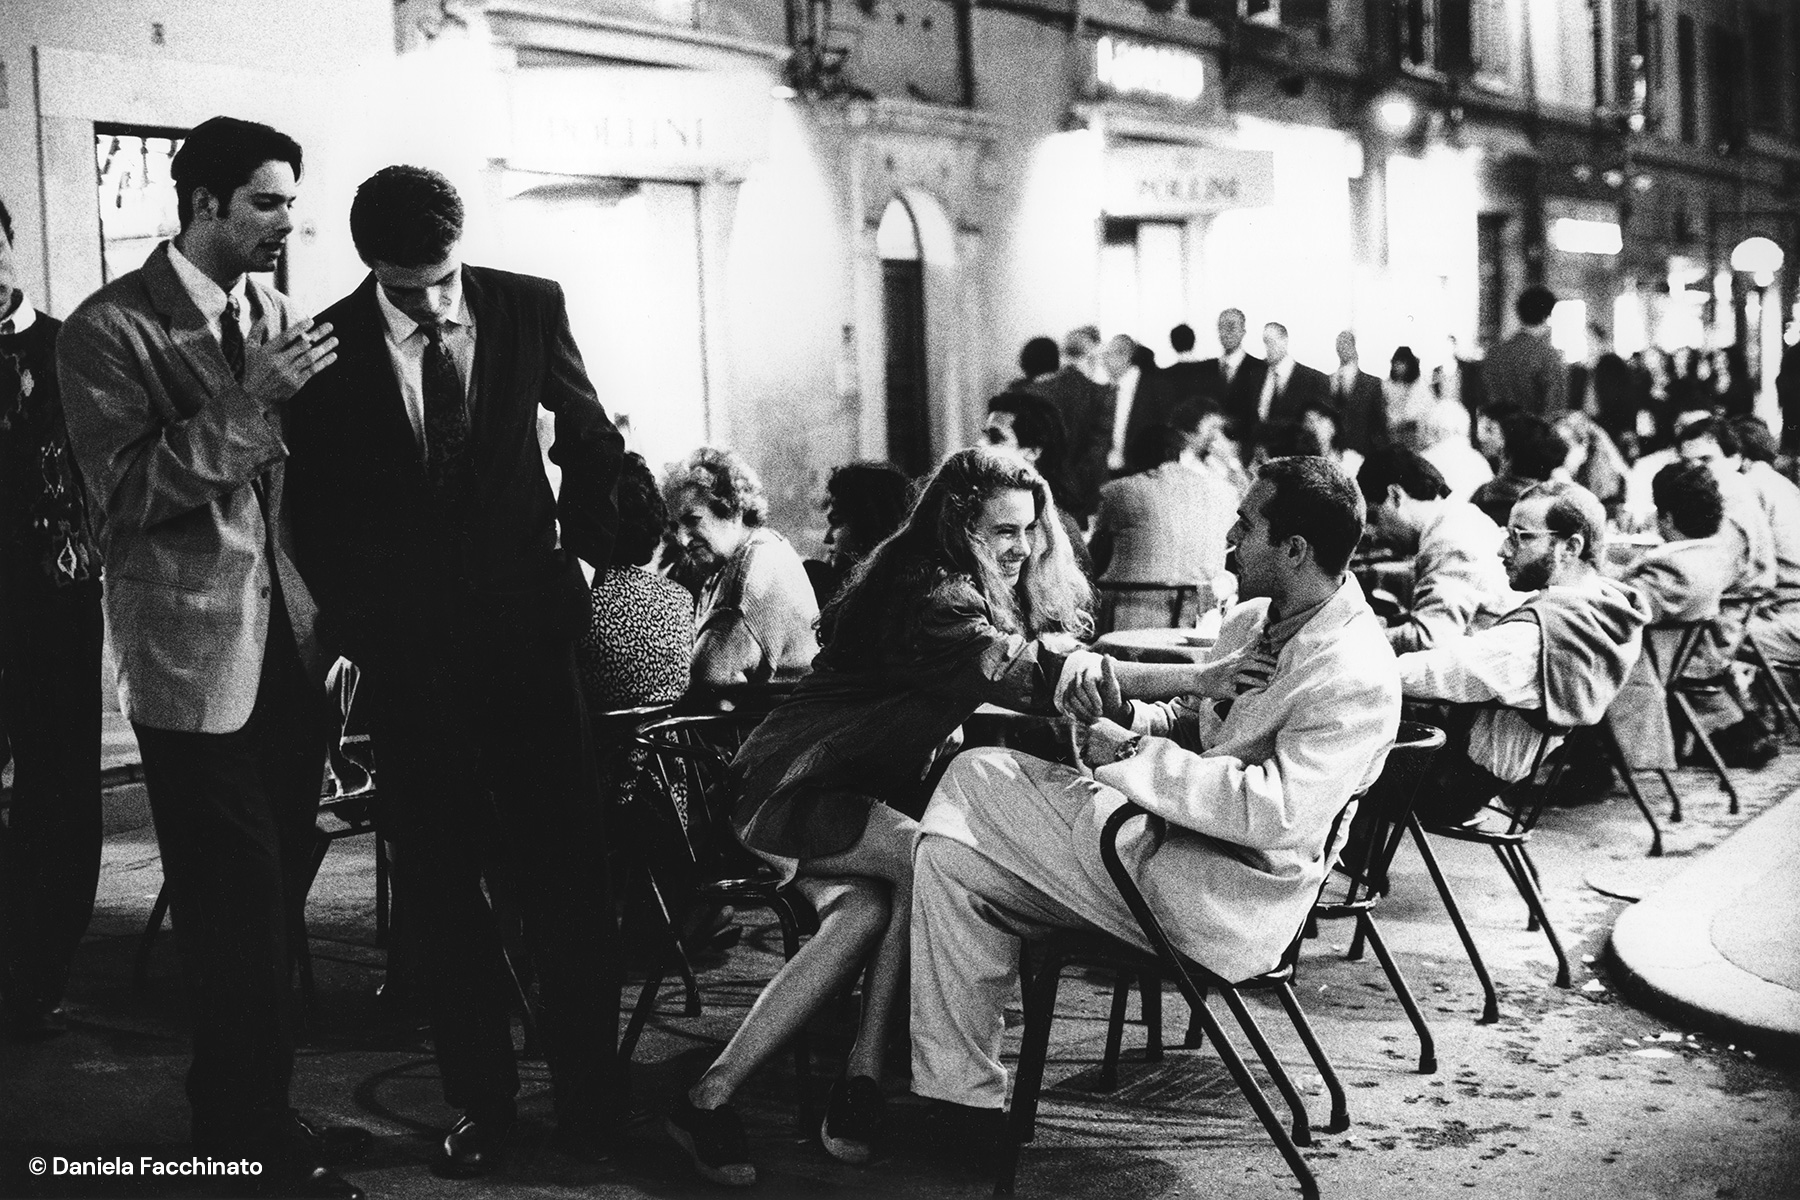 Rome 1989. Actress Ivonne Sciò and artist Renzini at the table of a Roman cafe. Adv. Campaign for M. O.